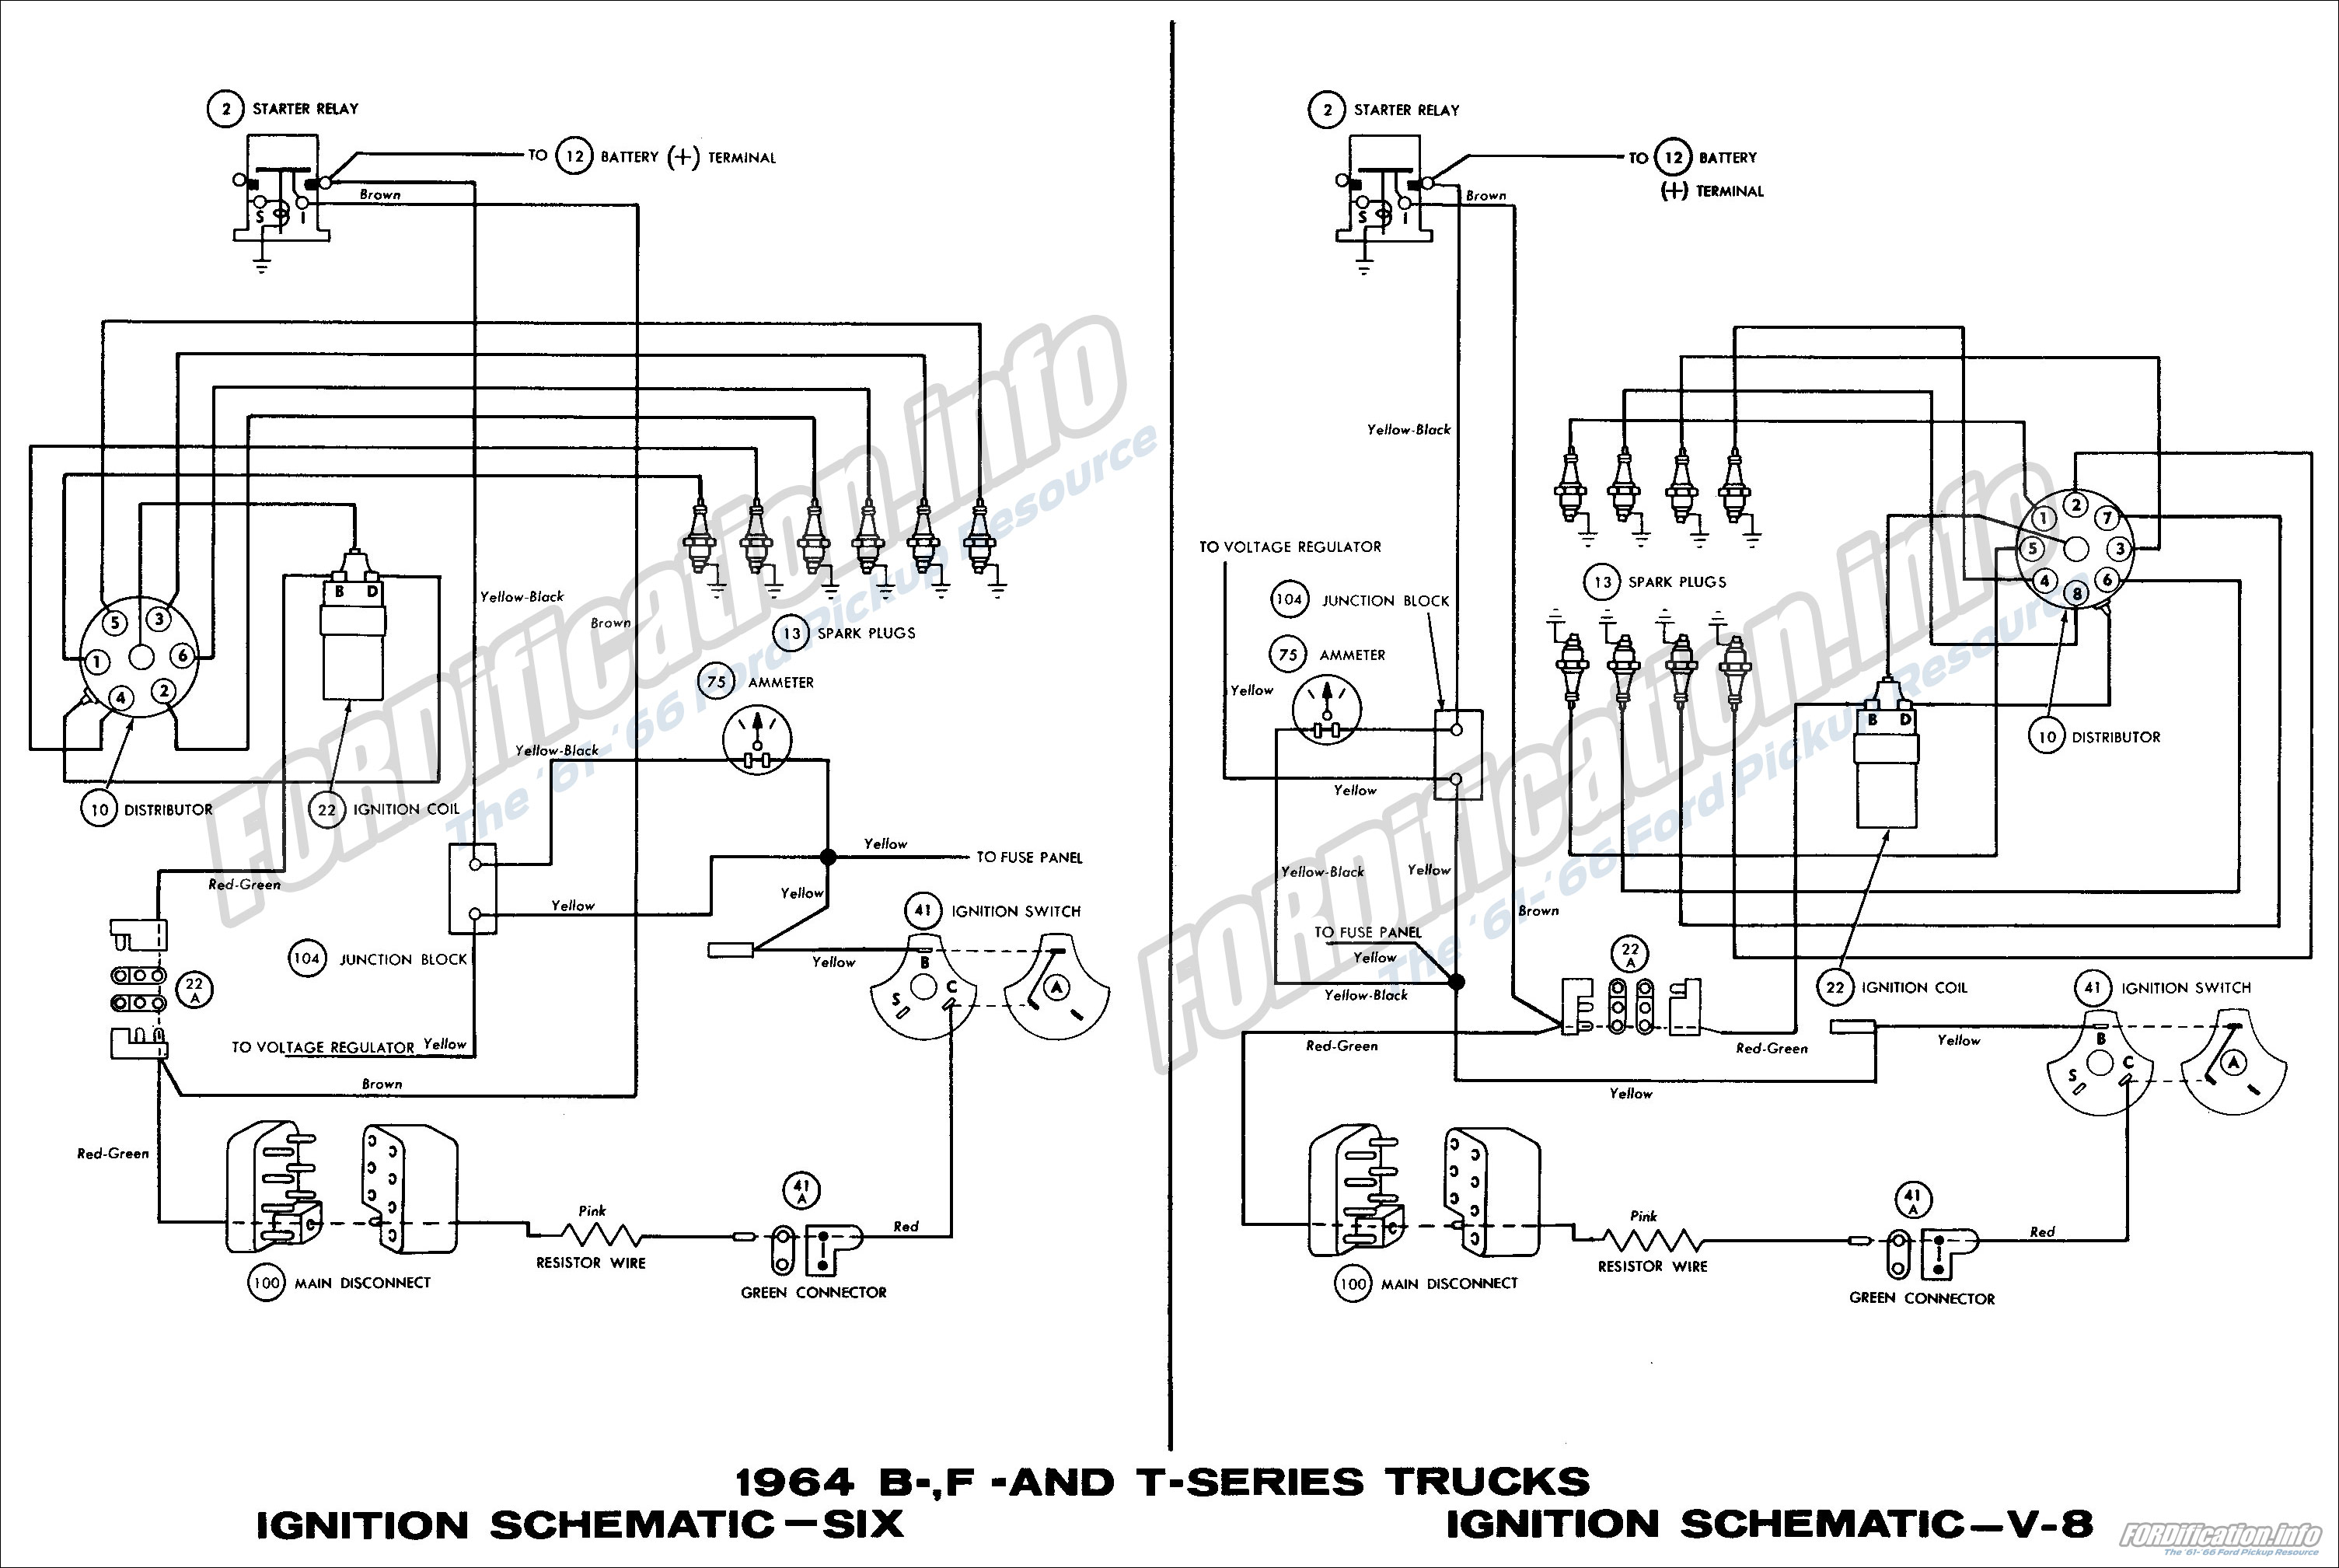 1963 ford f 250 distributor wiring wiring library schema diagram1963 ford f 250 distributor wiring wiring library detailed 65 ford 250 1963 ford f 250 distributor wiring